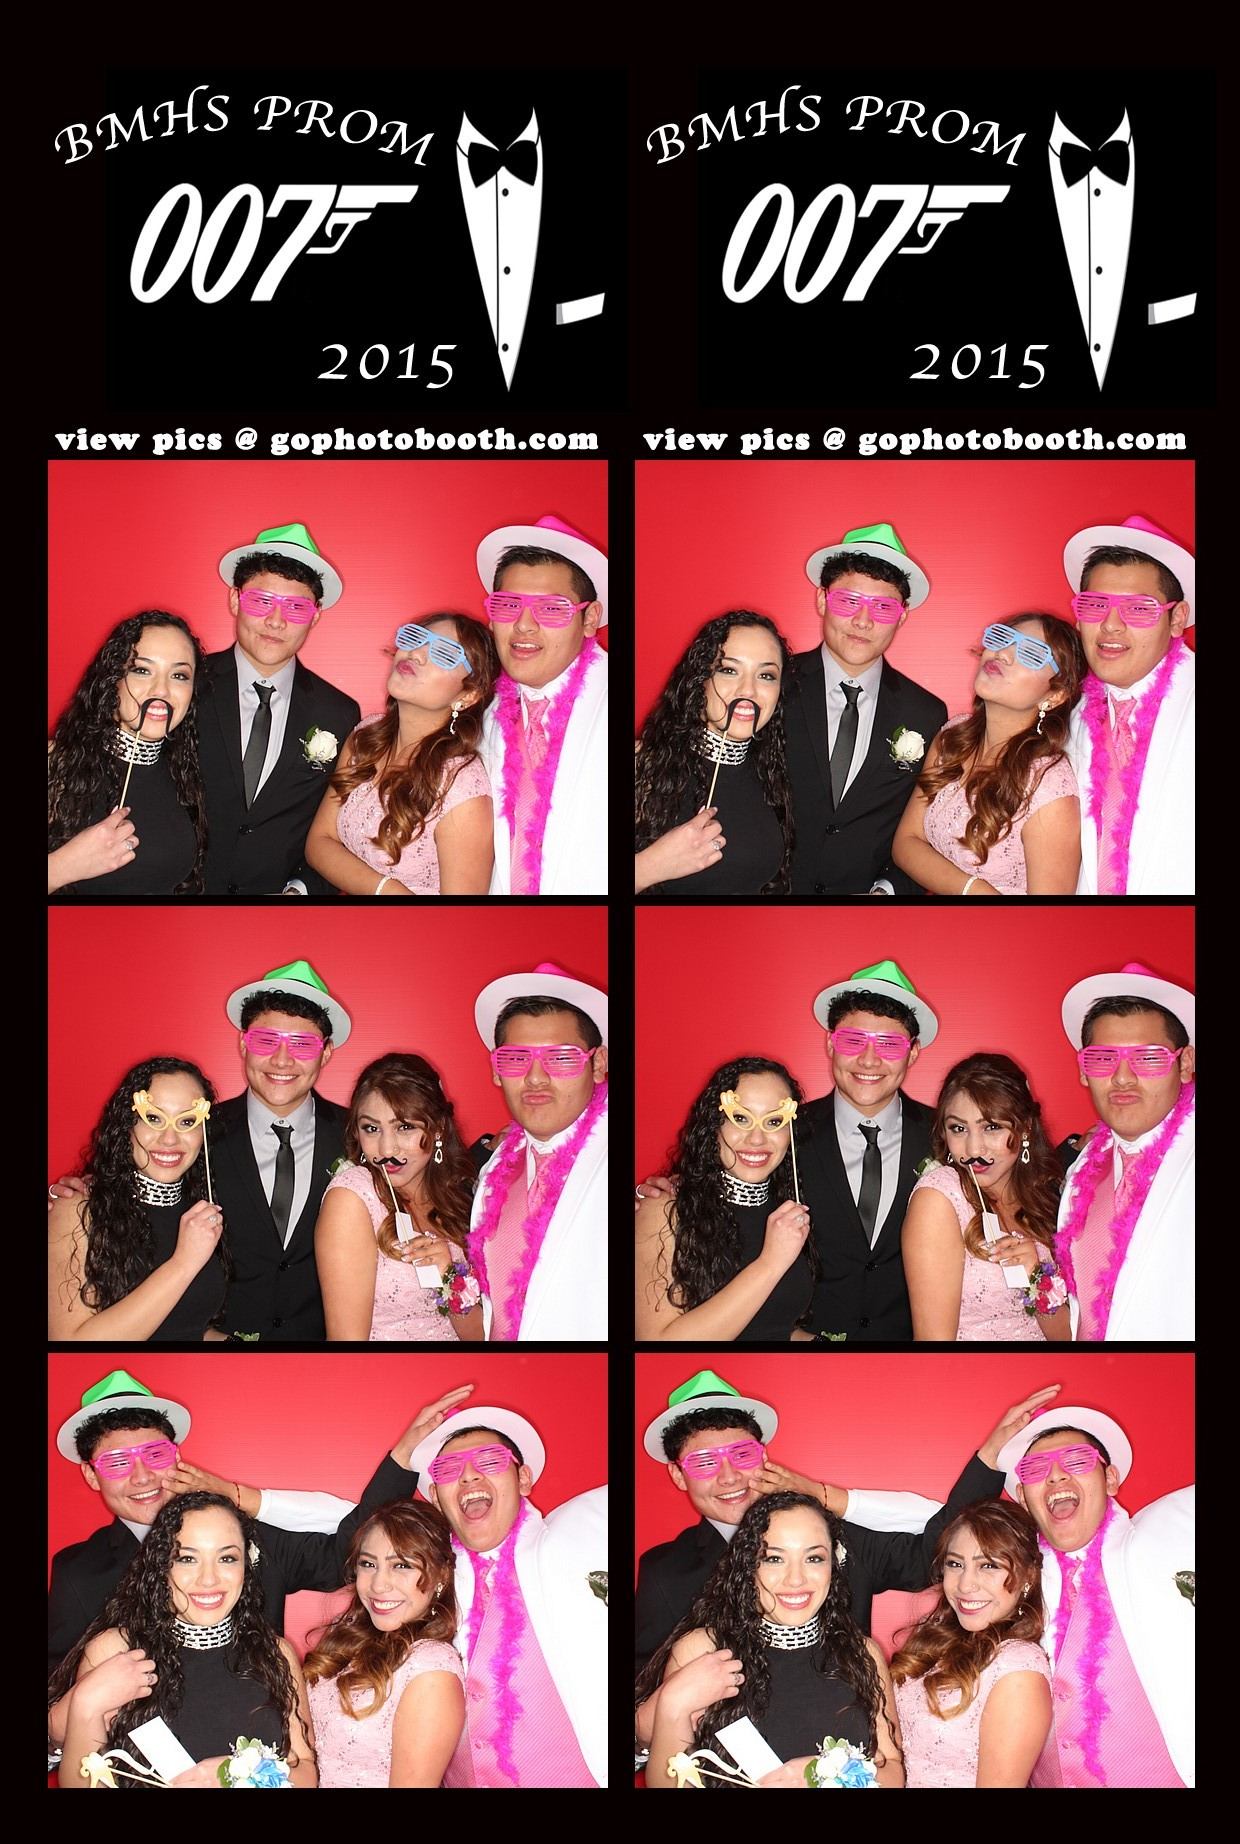 BMHS Prom 2015